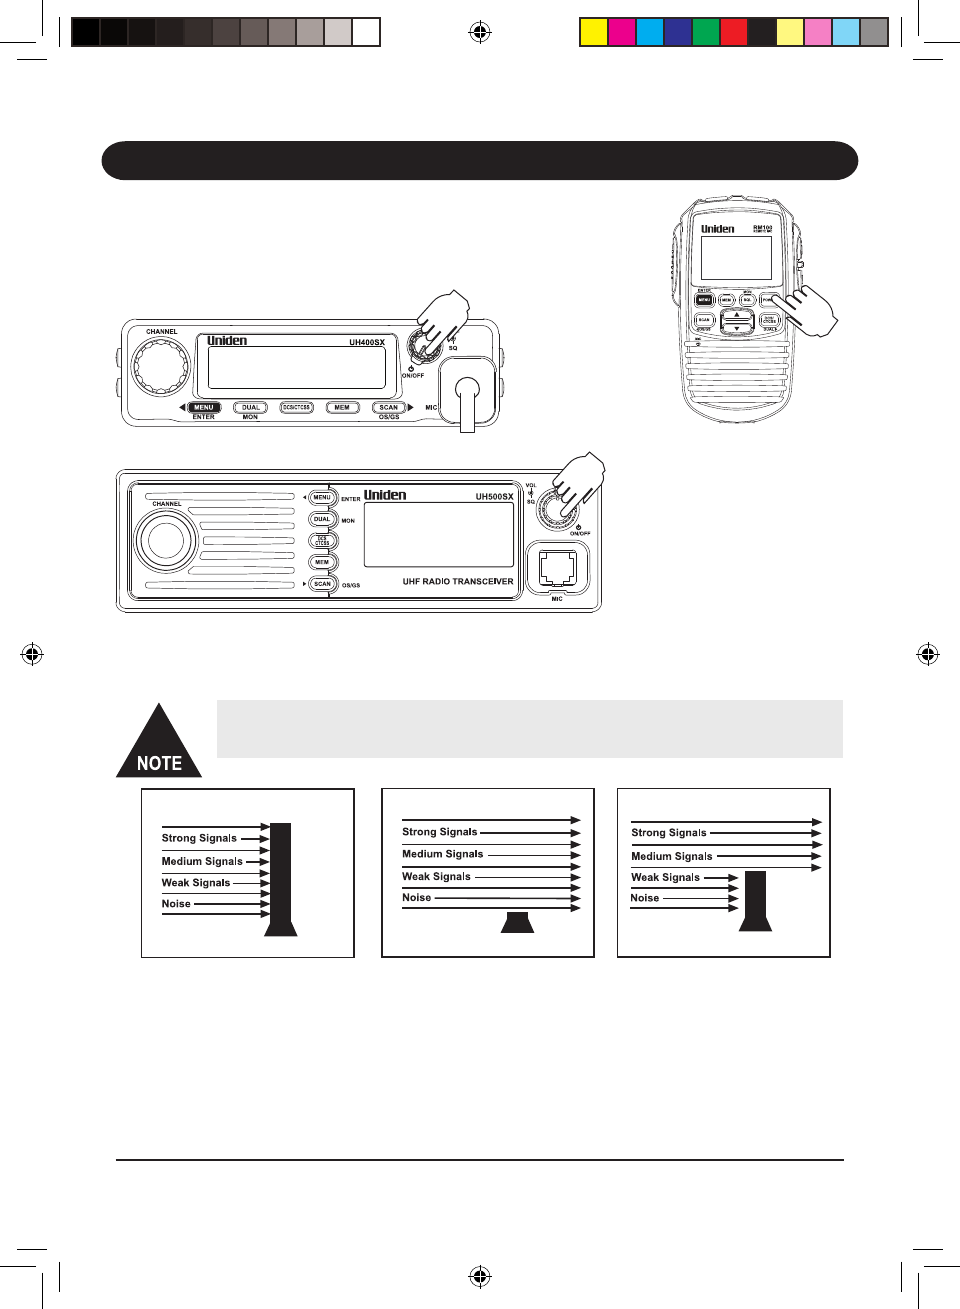 page 19 of uniden two way radio uh500sx user guide manualsonline com rh phone manualsonline com Uniden Answering Machine Manual Uniden Model Tr620-2 Manual